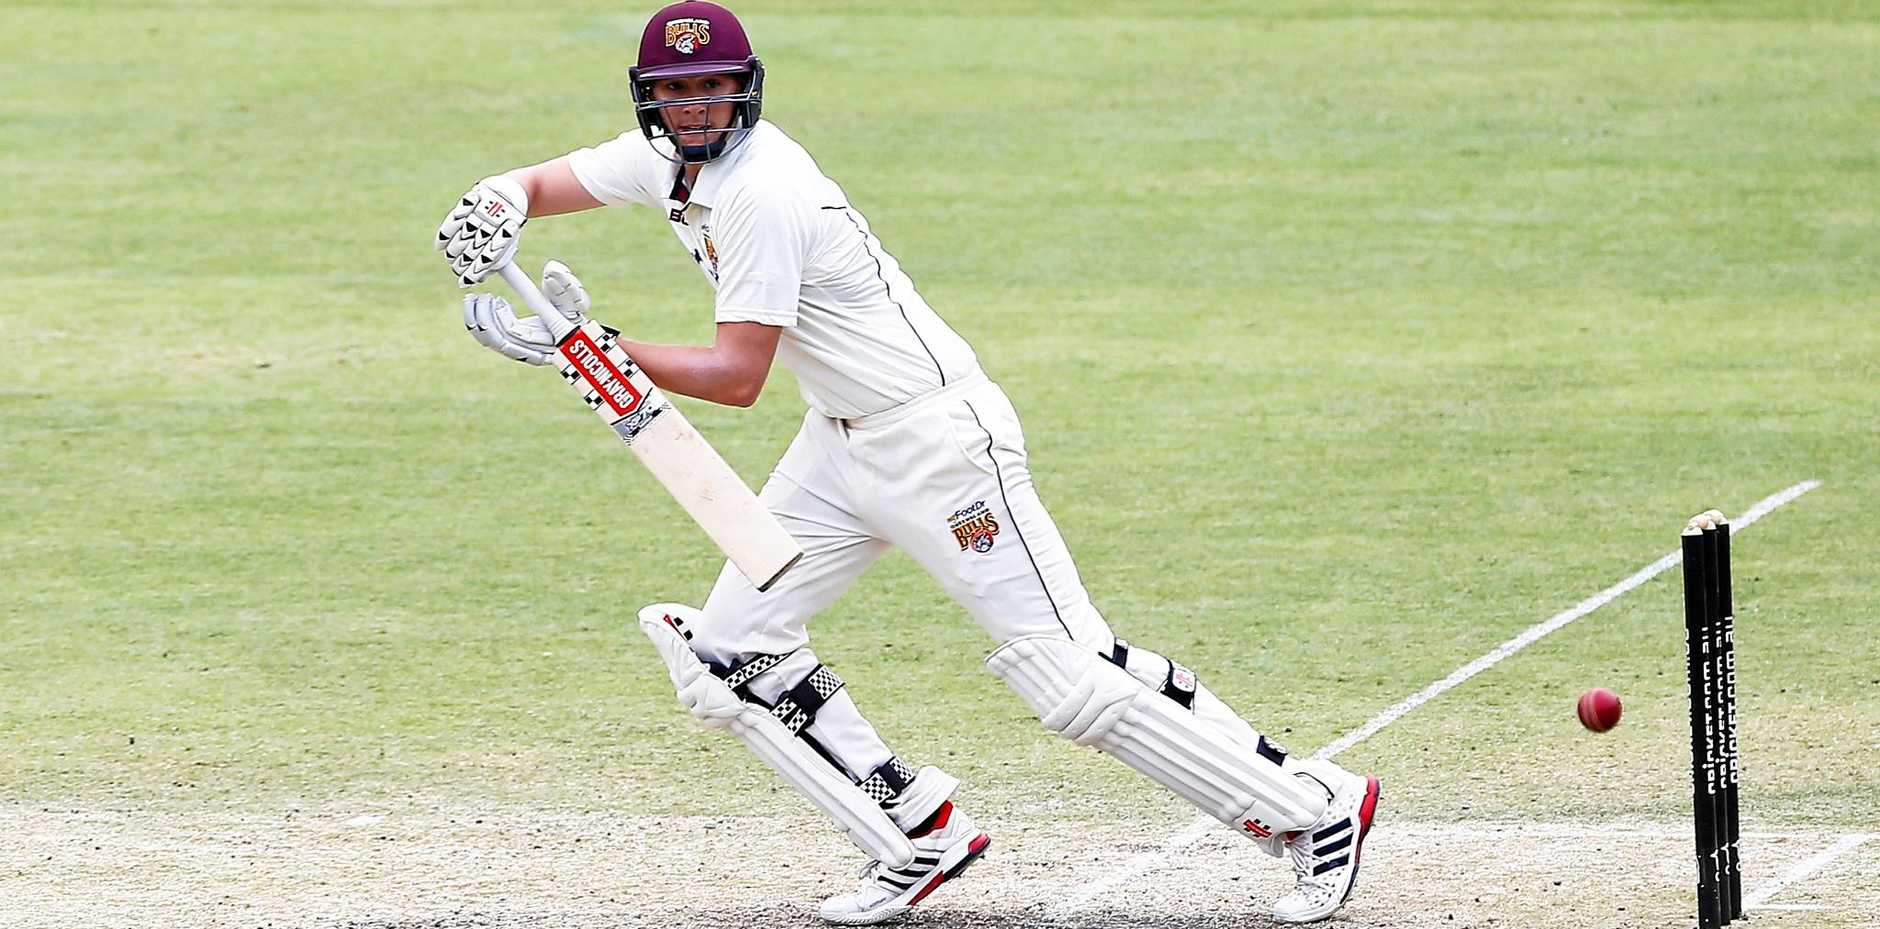 Matt Renshaw of the Bulls in action during day three of the Sheffield Shield match between Queensland and South Australia at the Gabba.